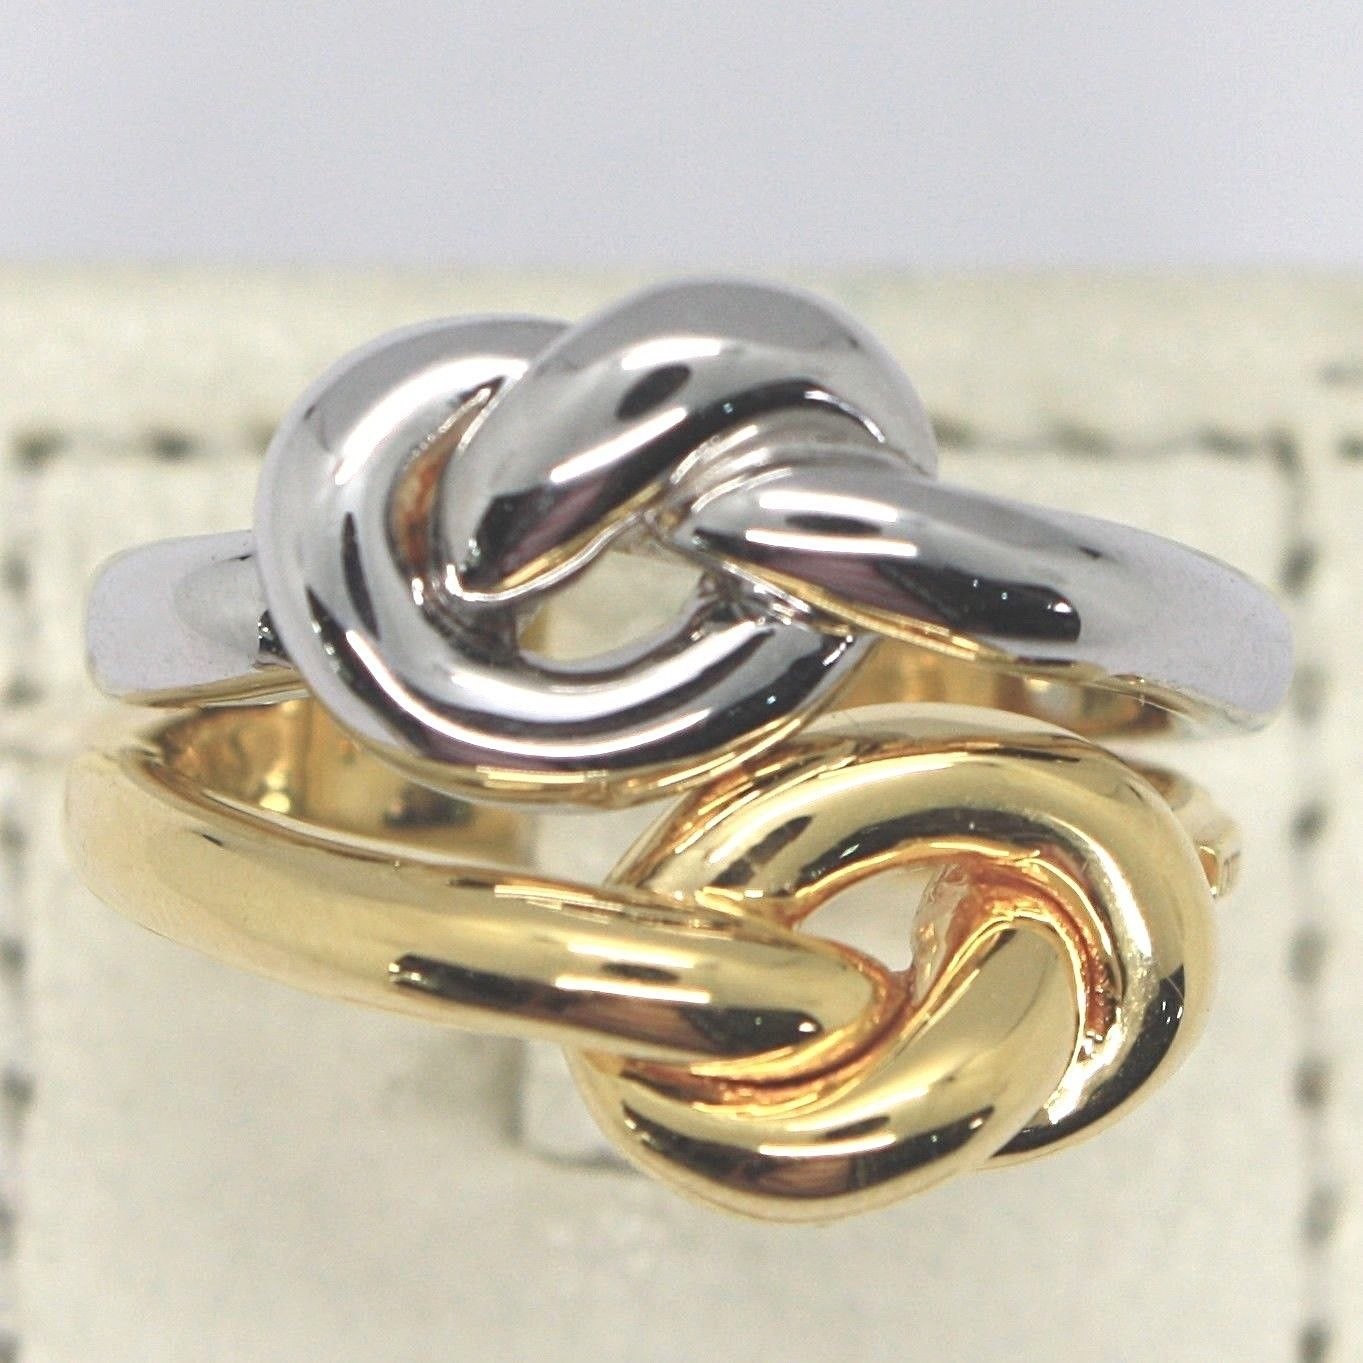 YELLOW GOLD RING WHITE 750 18K, DOUBLE KNOT, INFINITY, MADE IN ITALY